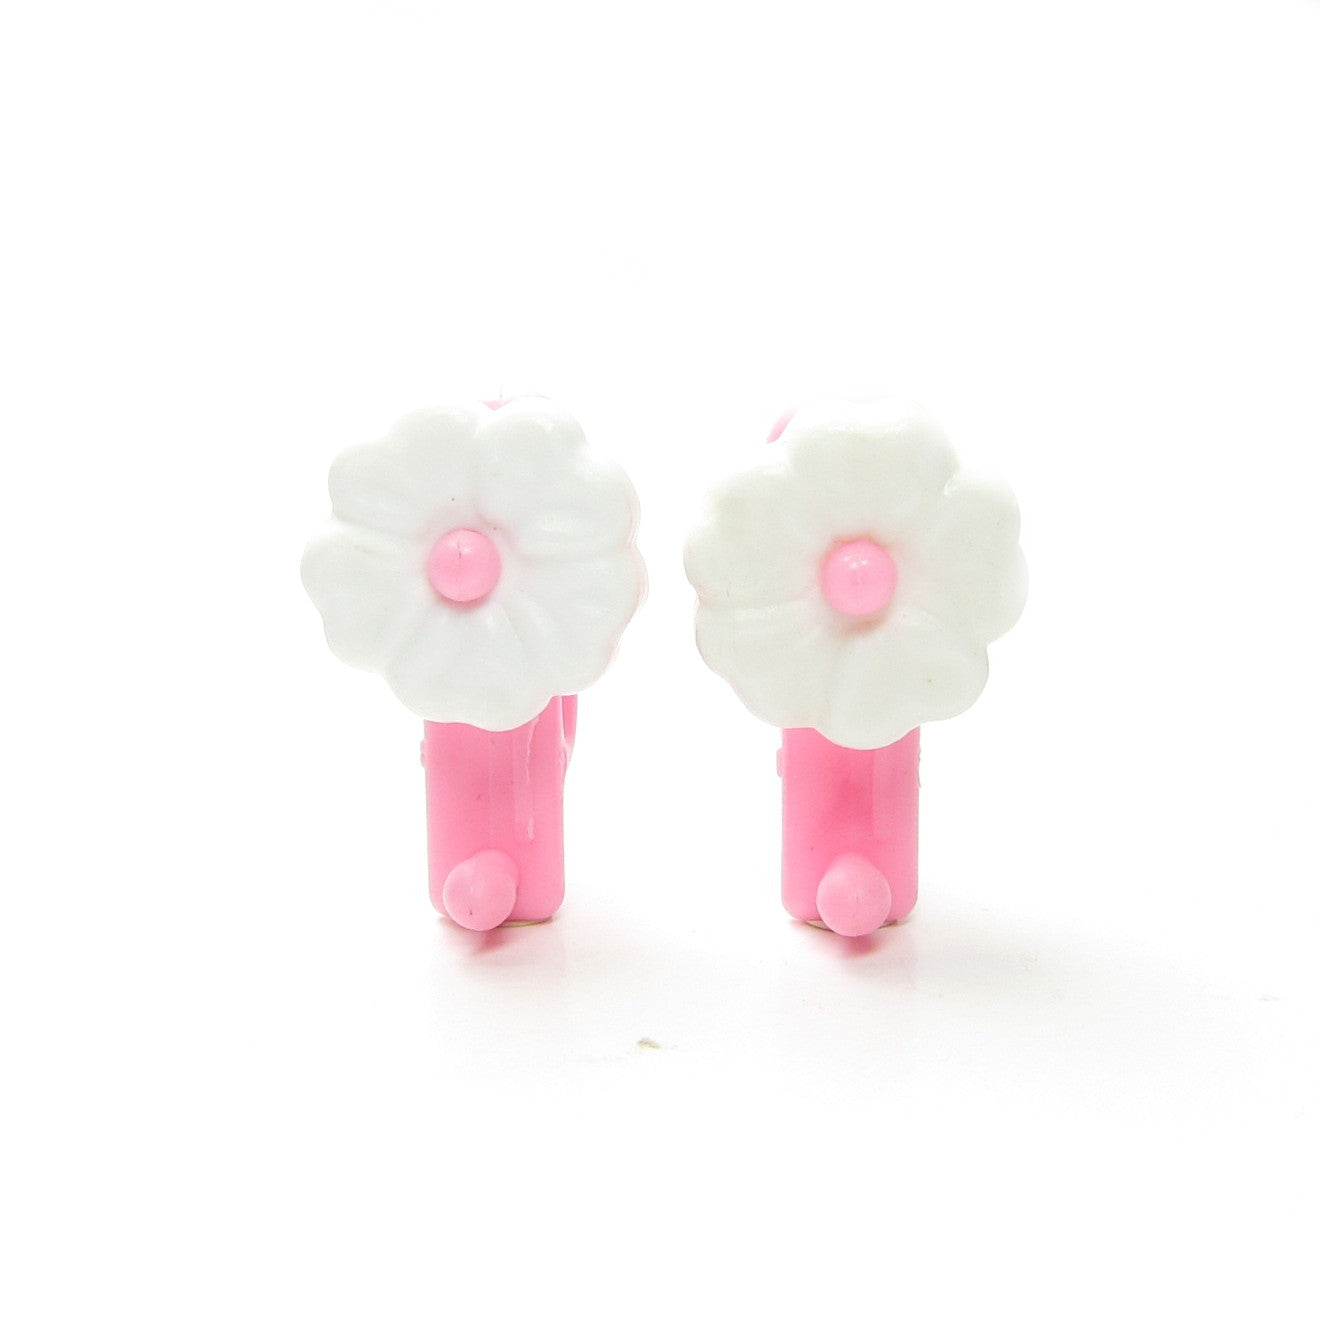 Charmkins Petal Earrings with white flowers